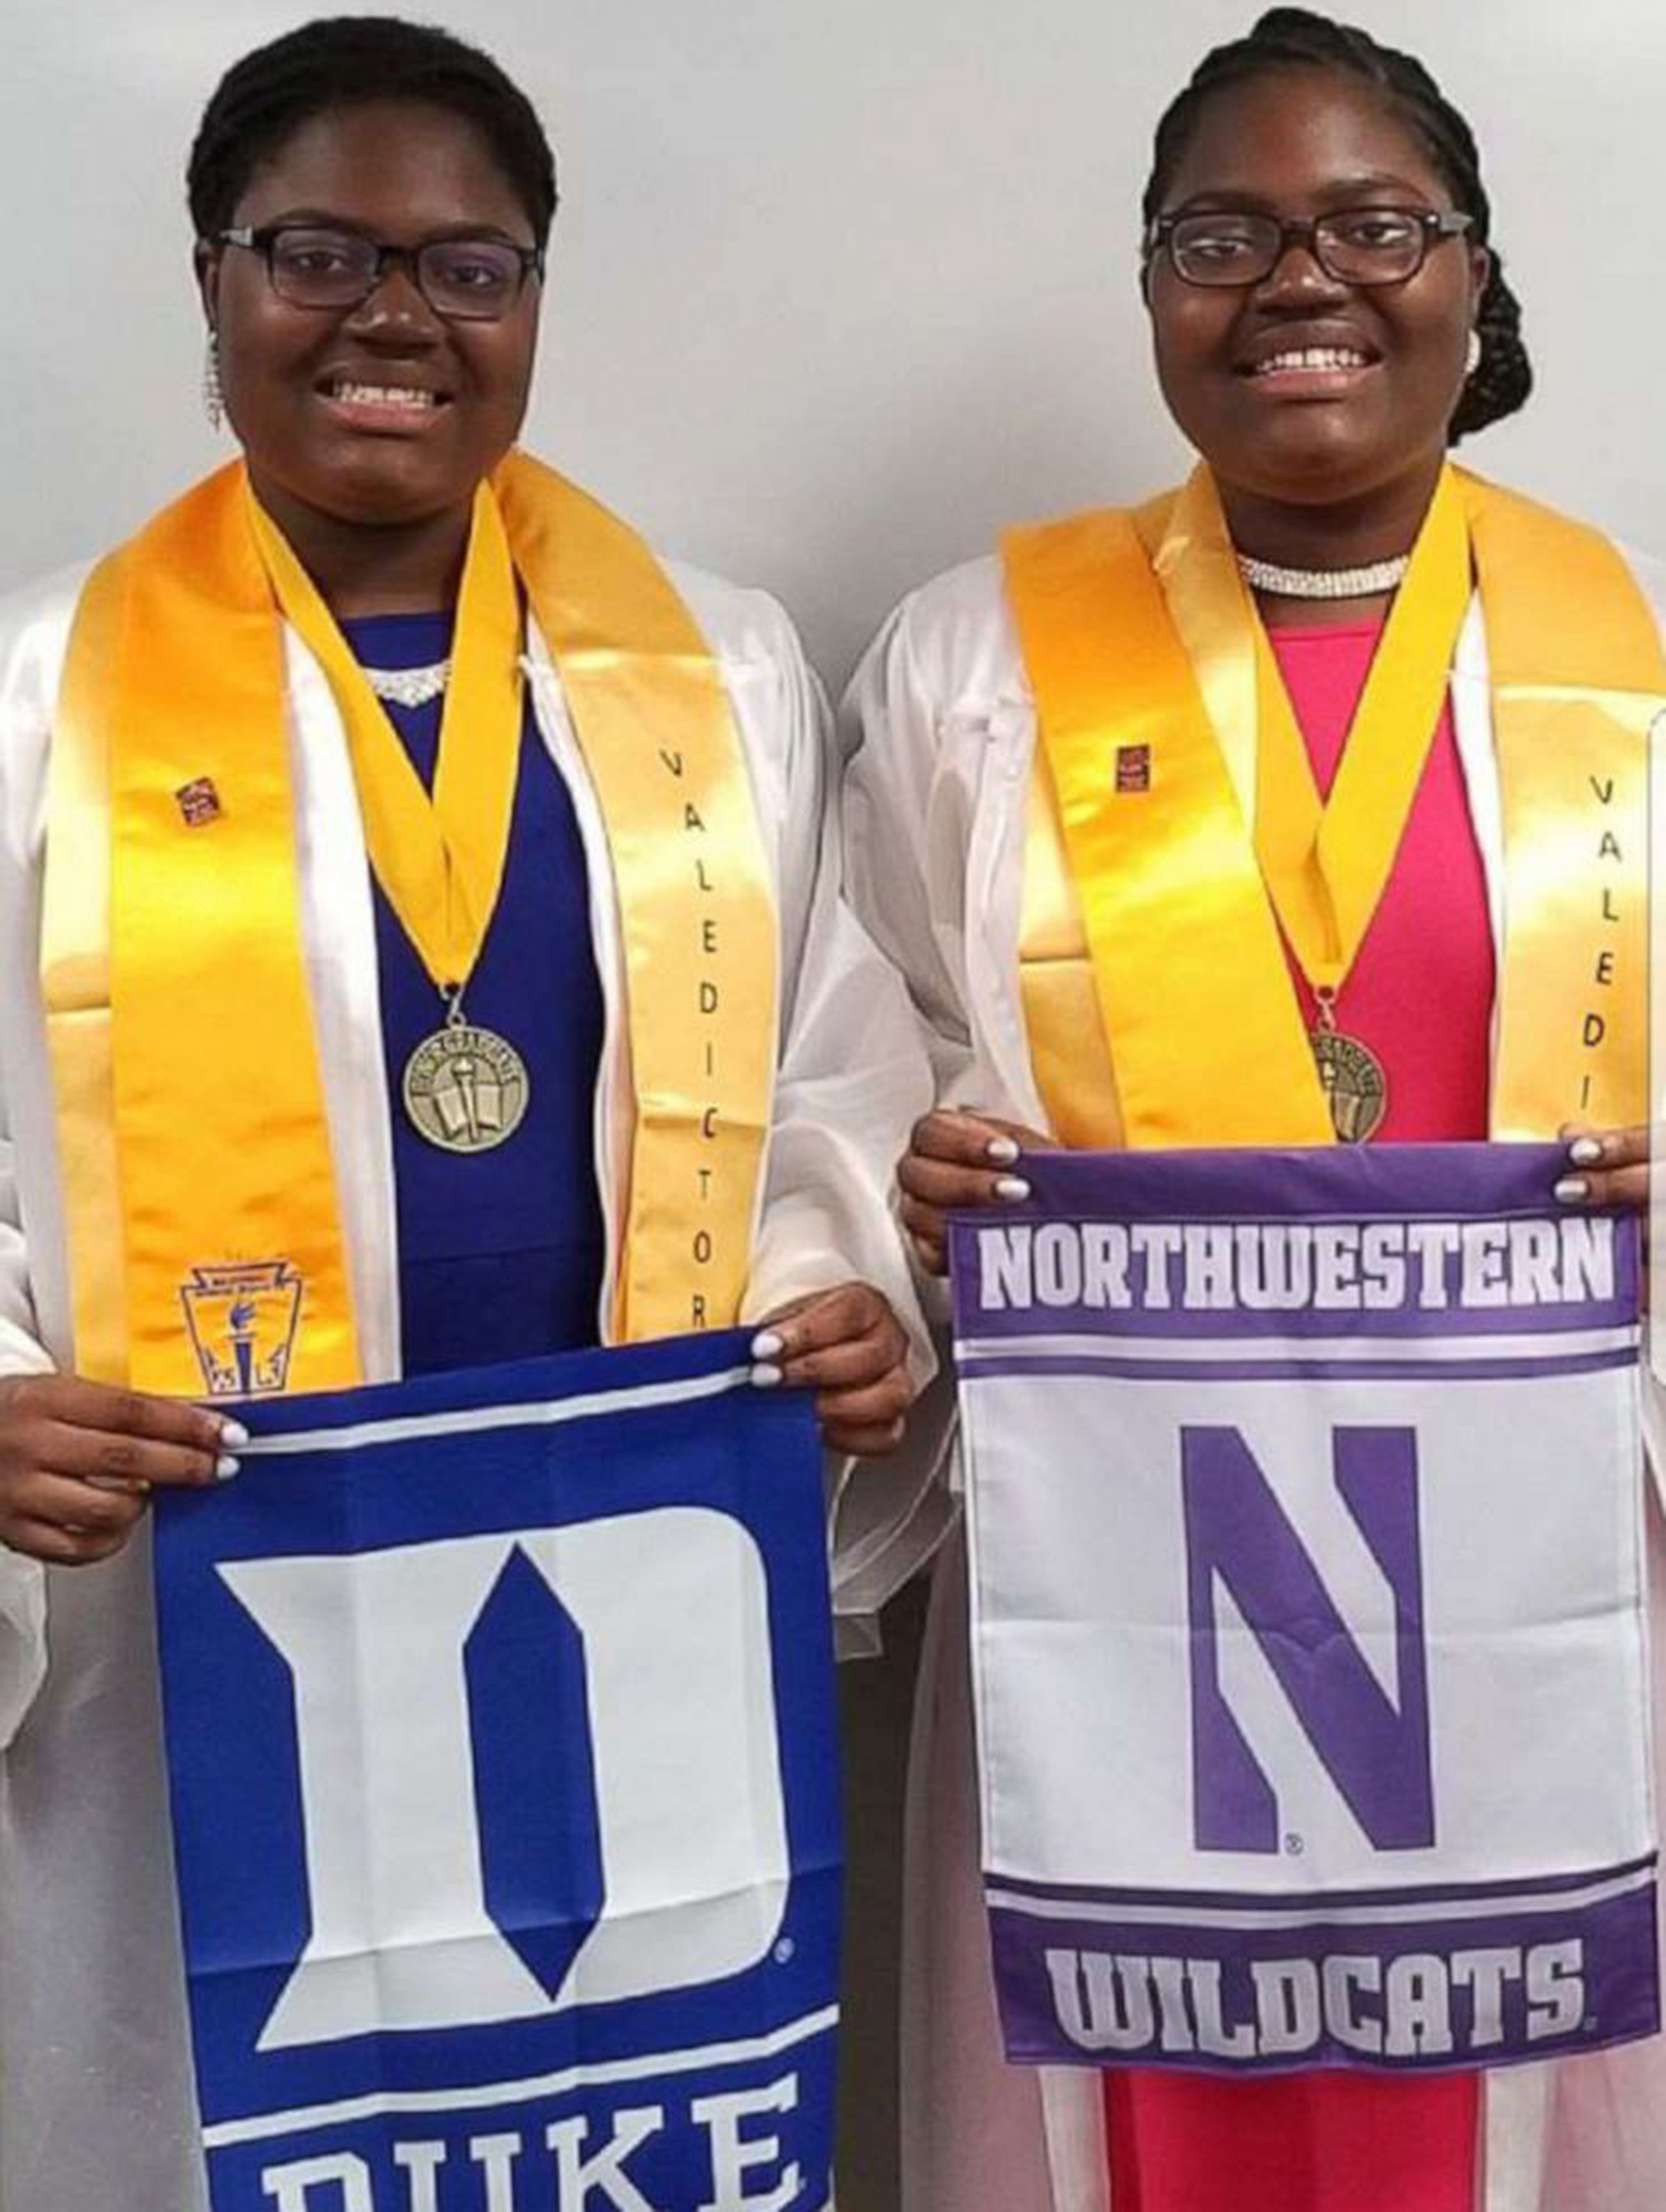 Tia and Tyra Smith twin valedictorians